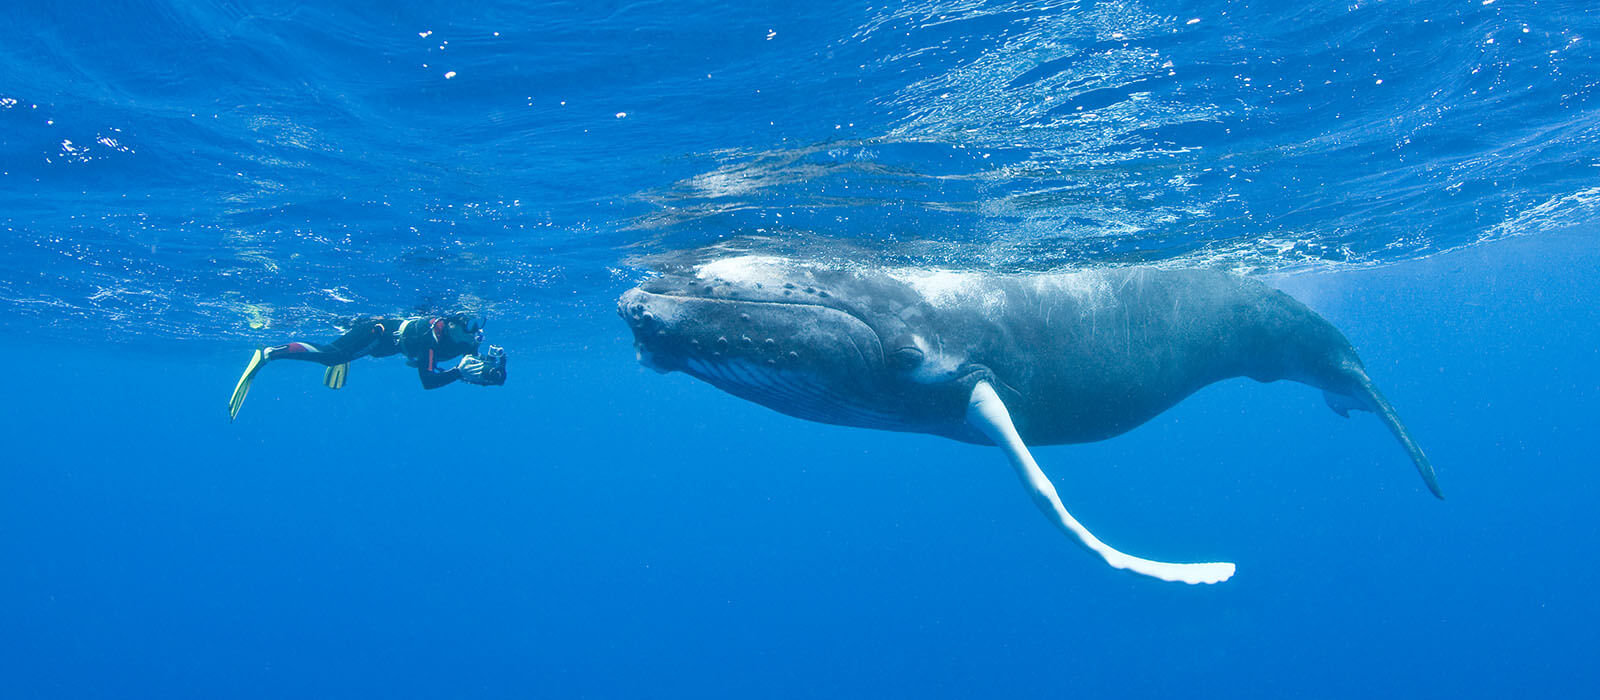 snorkeler photographing a humpback whale - coral triangle adventures